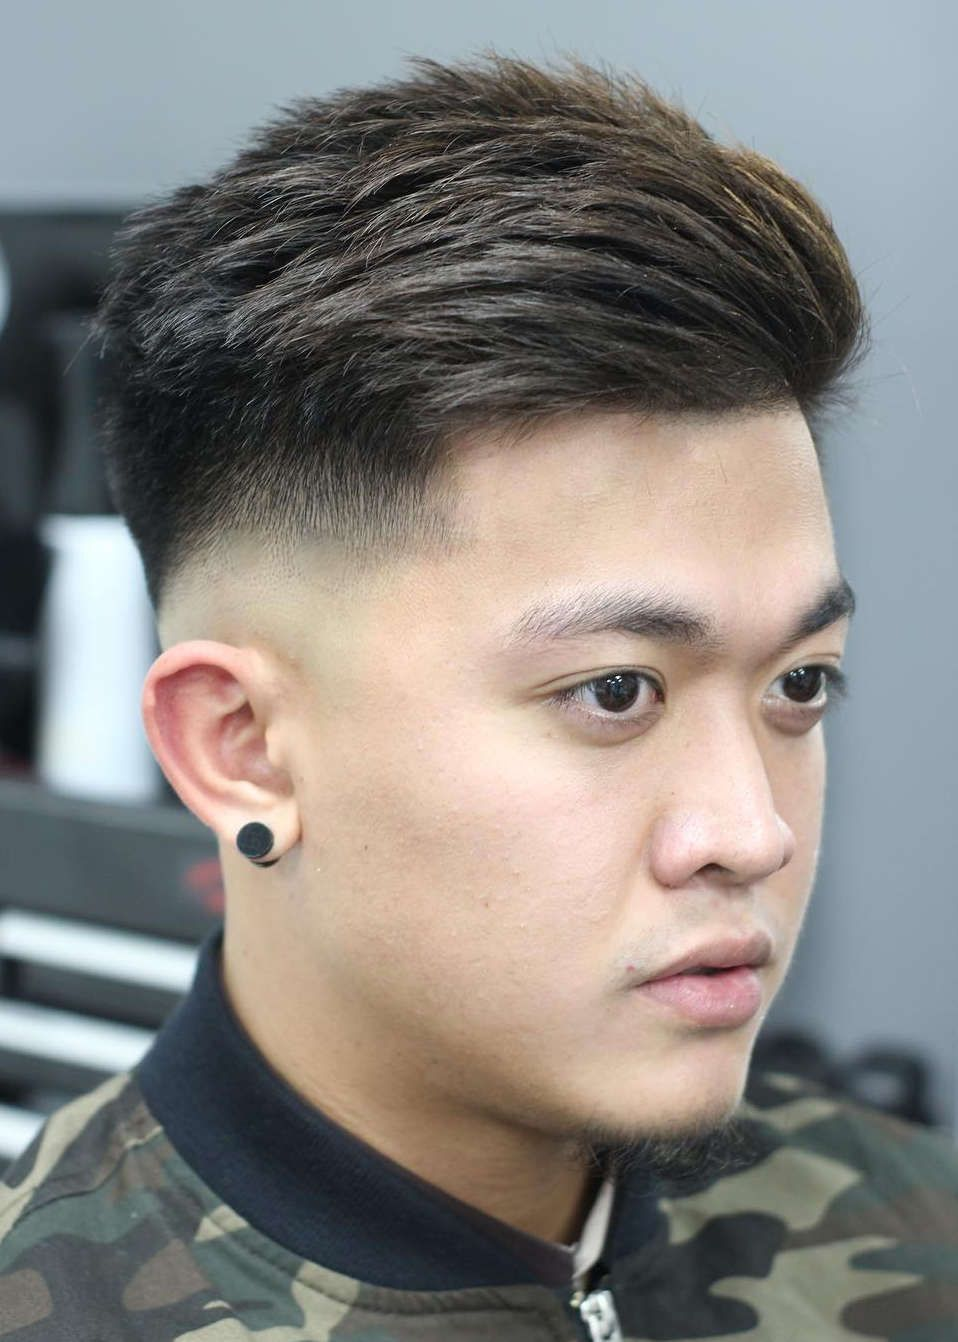 Top 30 Trendy Asian Men Hairstyles 2020 Asian Men Hairstyle Asian Hair Cool Hairstyles For Men